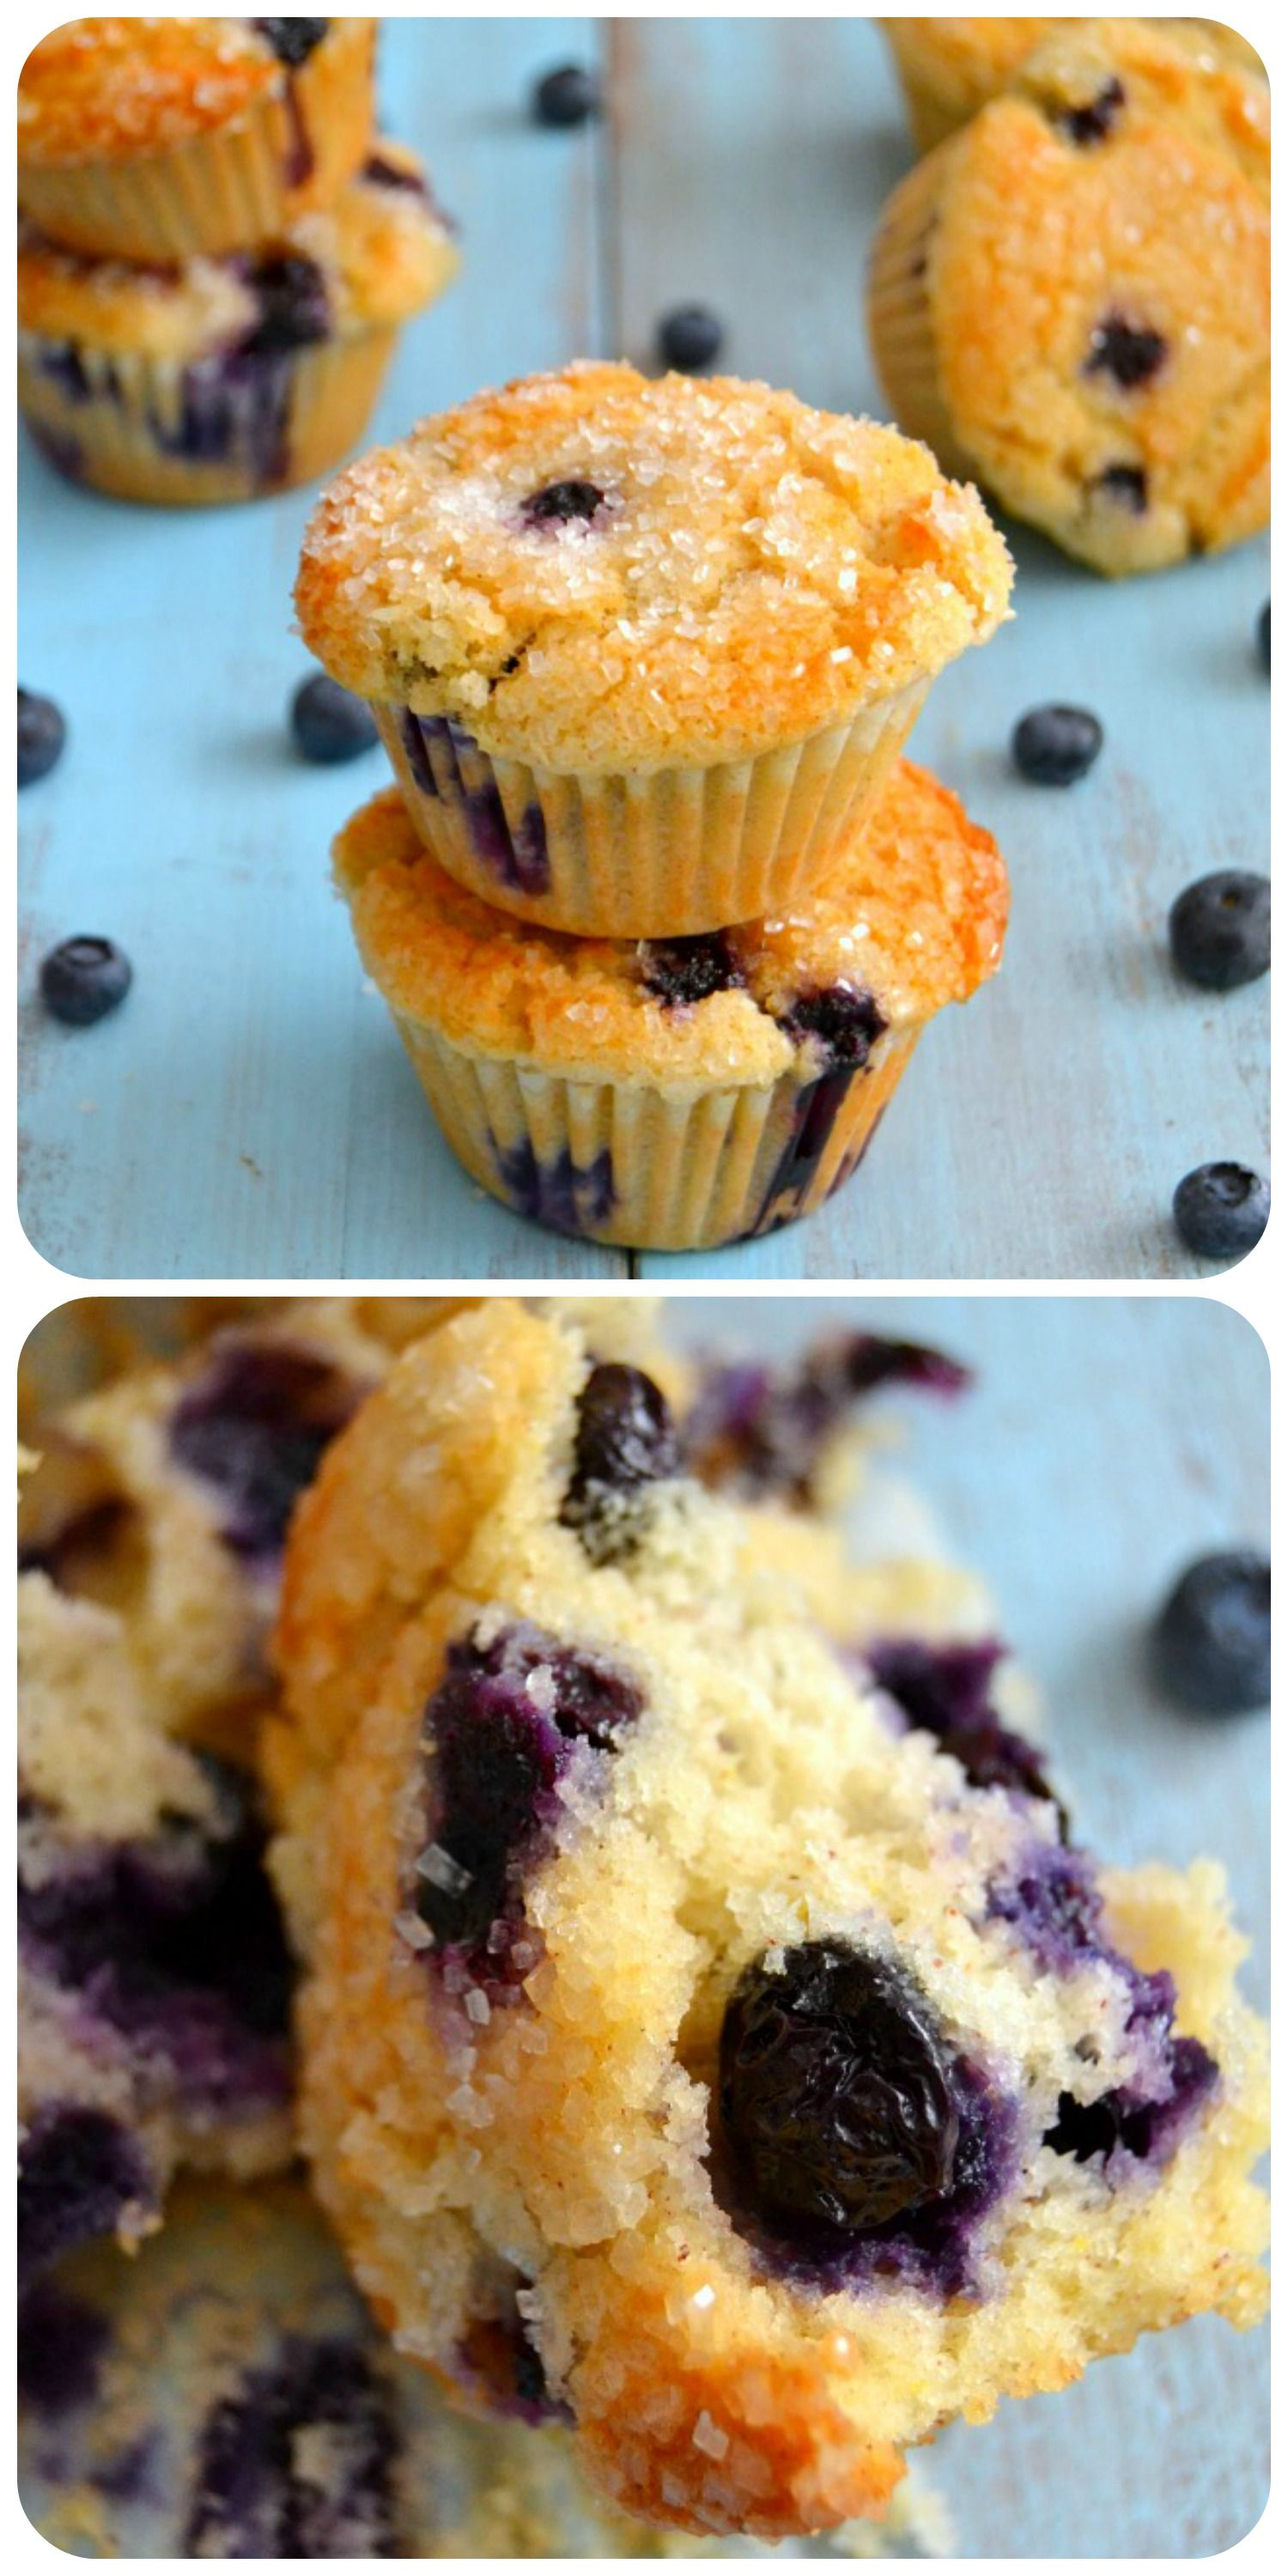 The BEST Blueberry Muffins!  These plush muffins are soft & tender, are bursting with fresh blueberries and have the most delectable crispy & crunchy sugared top!  A MUST make!